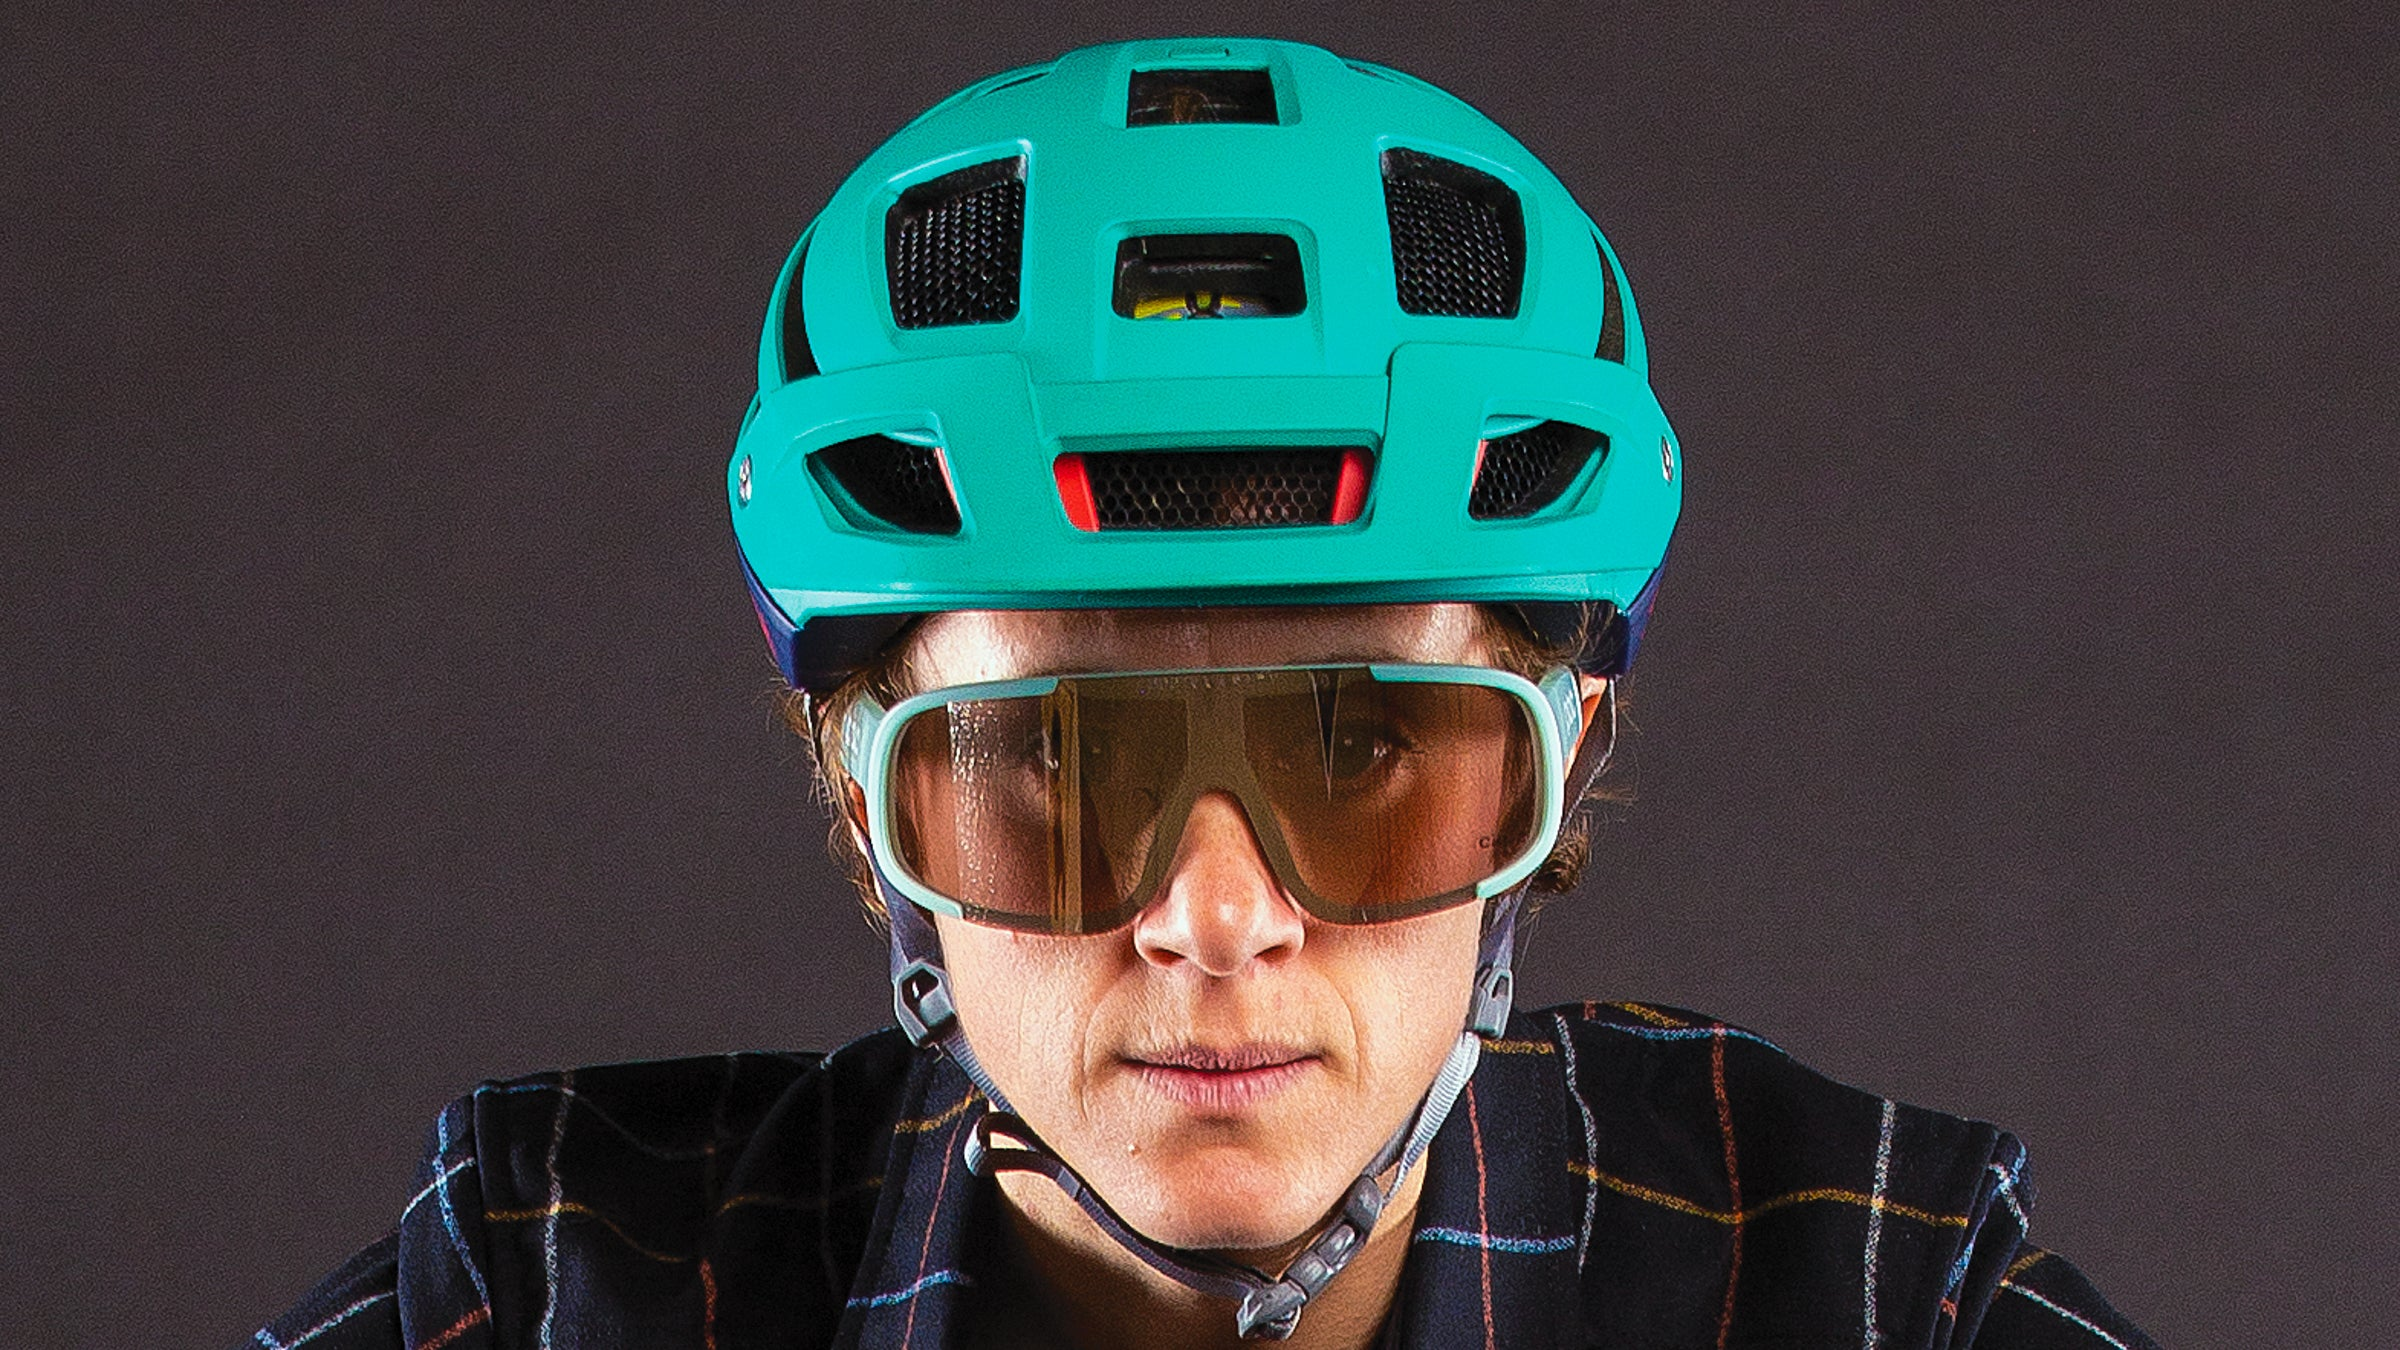 Close-up of woman wearing cycling helmet and sunglasses